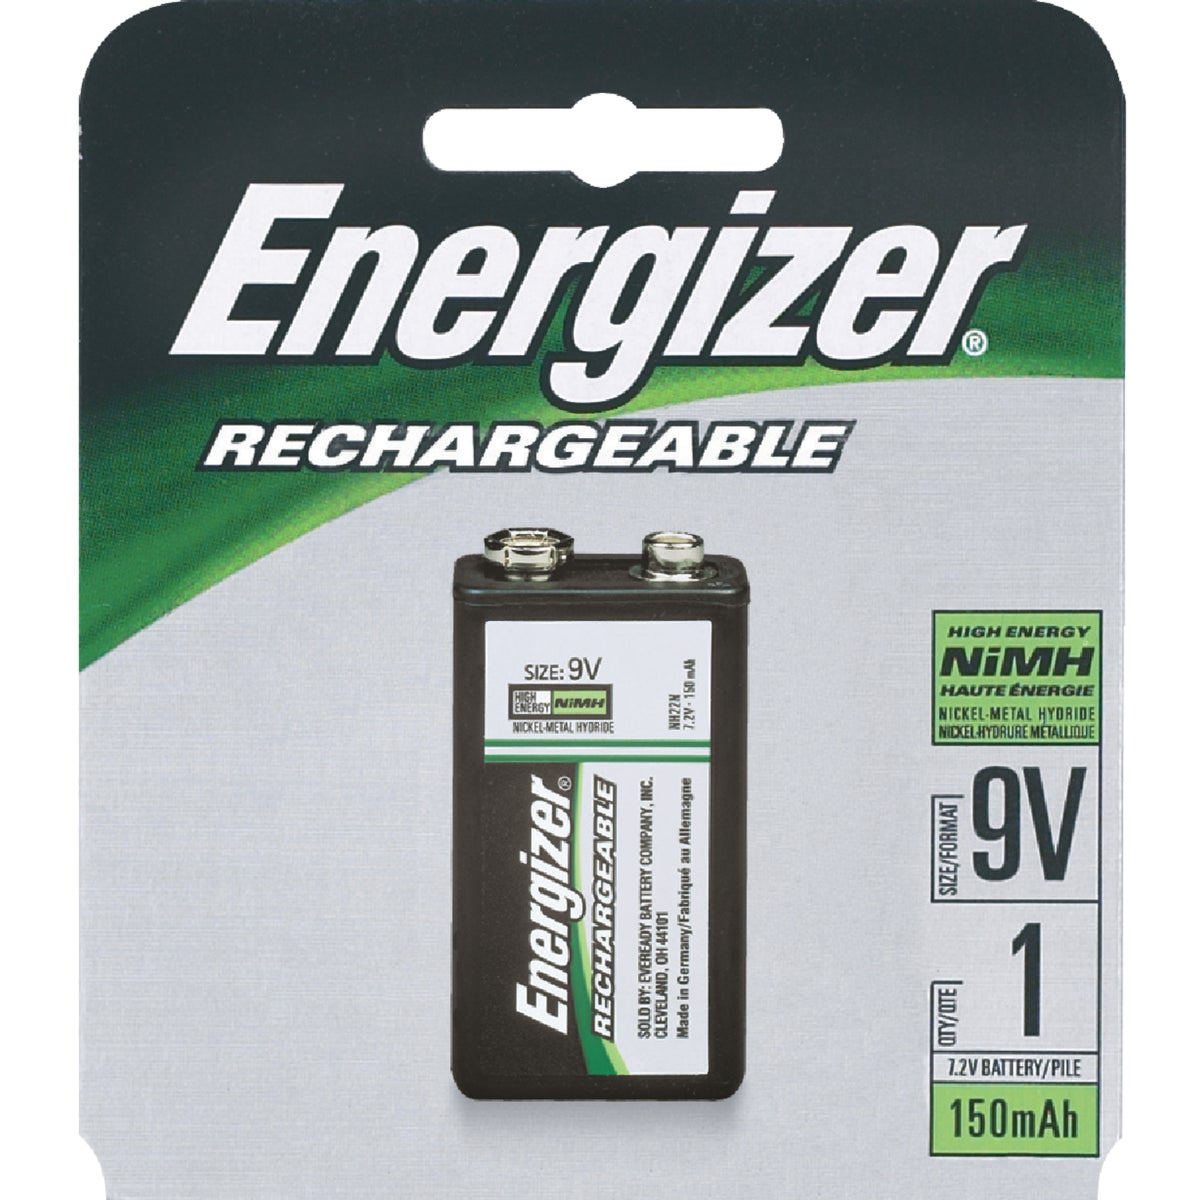 9V RECHARGEABLE BATTERY - NH22NBP by Energizer